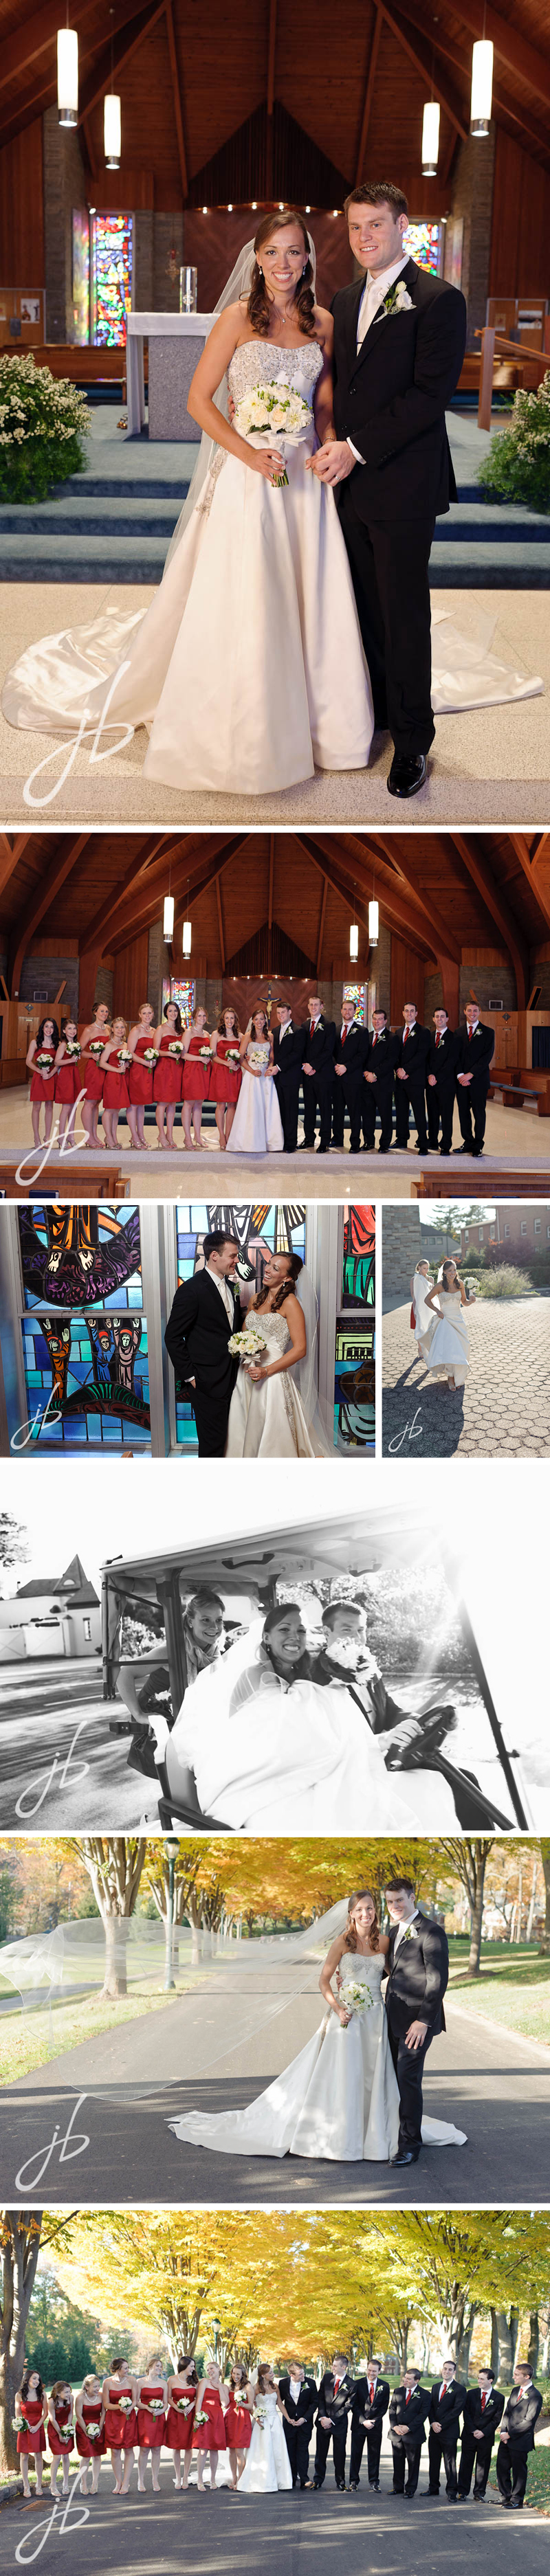 Villanova wedding photography by Jeremy Bischoff Photography